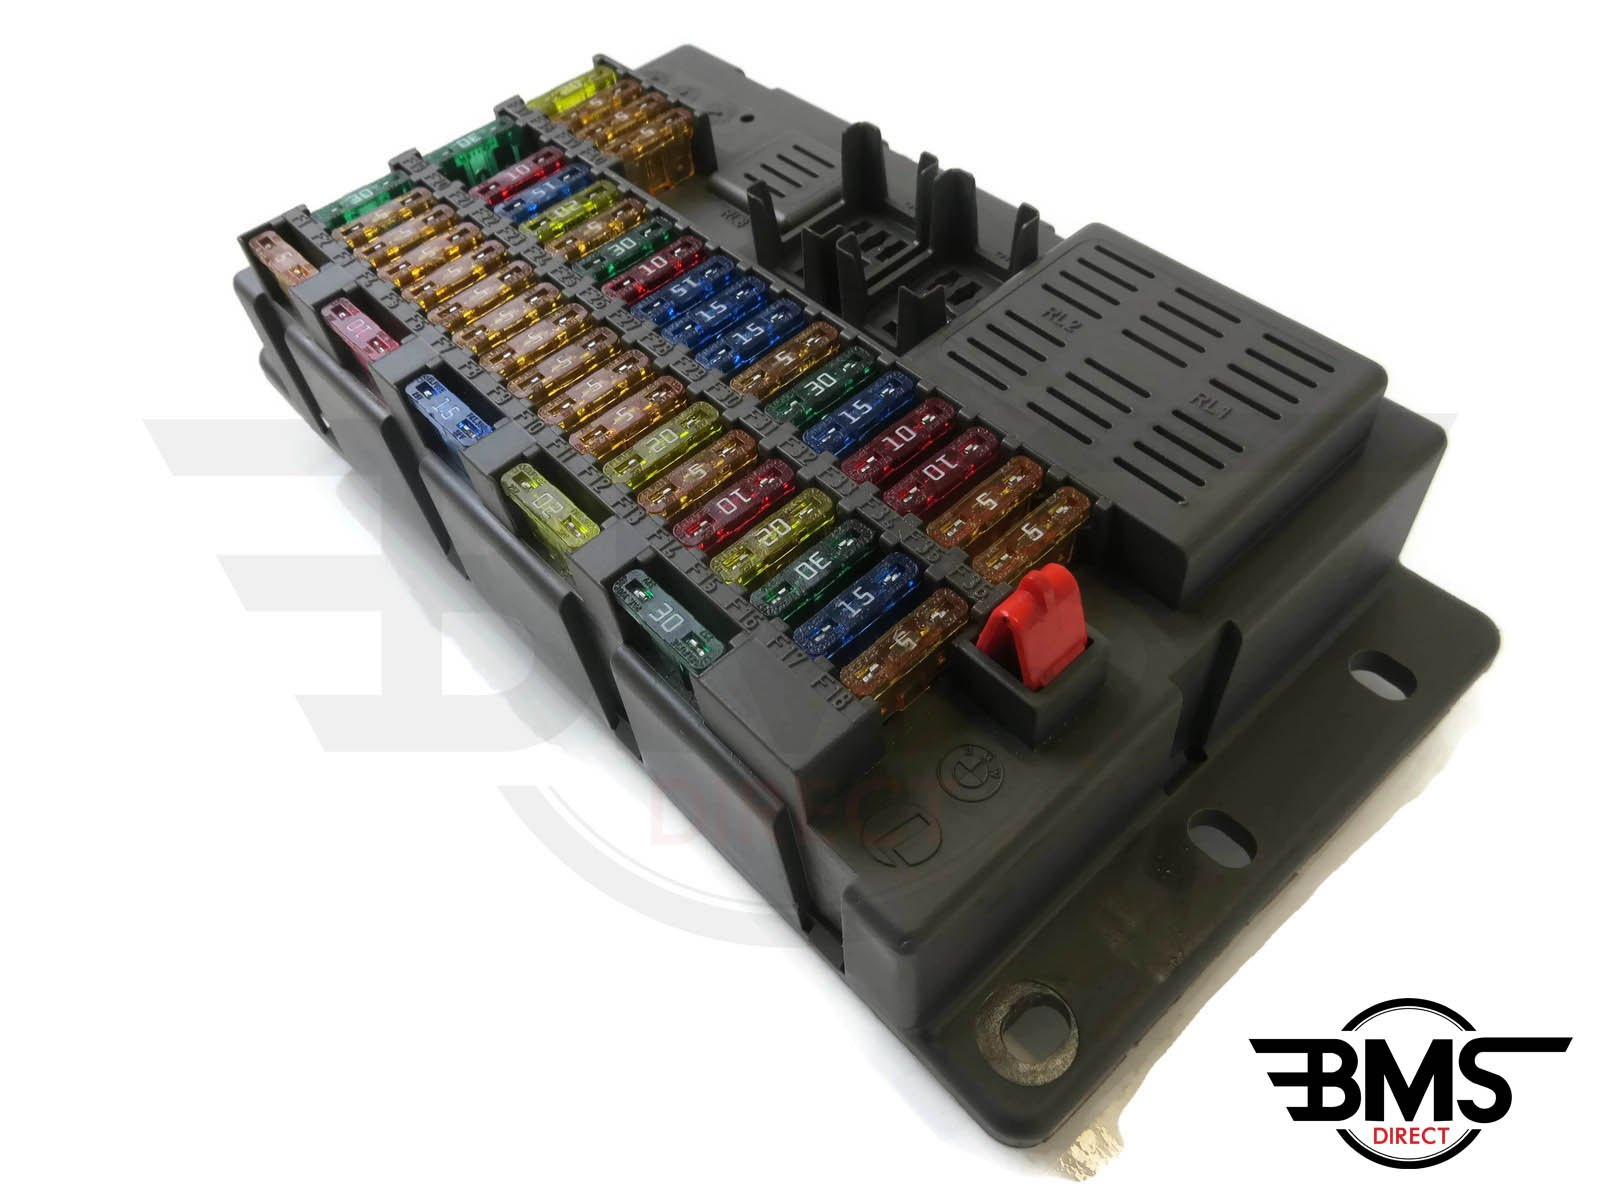 Fuse Box R50 R52 R53 Bms Direct Ltd Wiring Library Mini Cooper Diagram 2006 Control Unit Map Panel Layout Parts Blower Heated Front